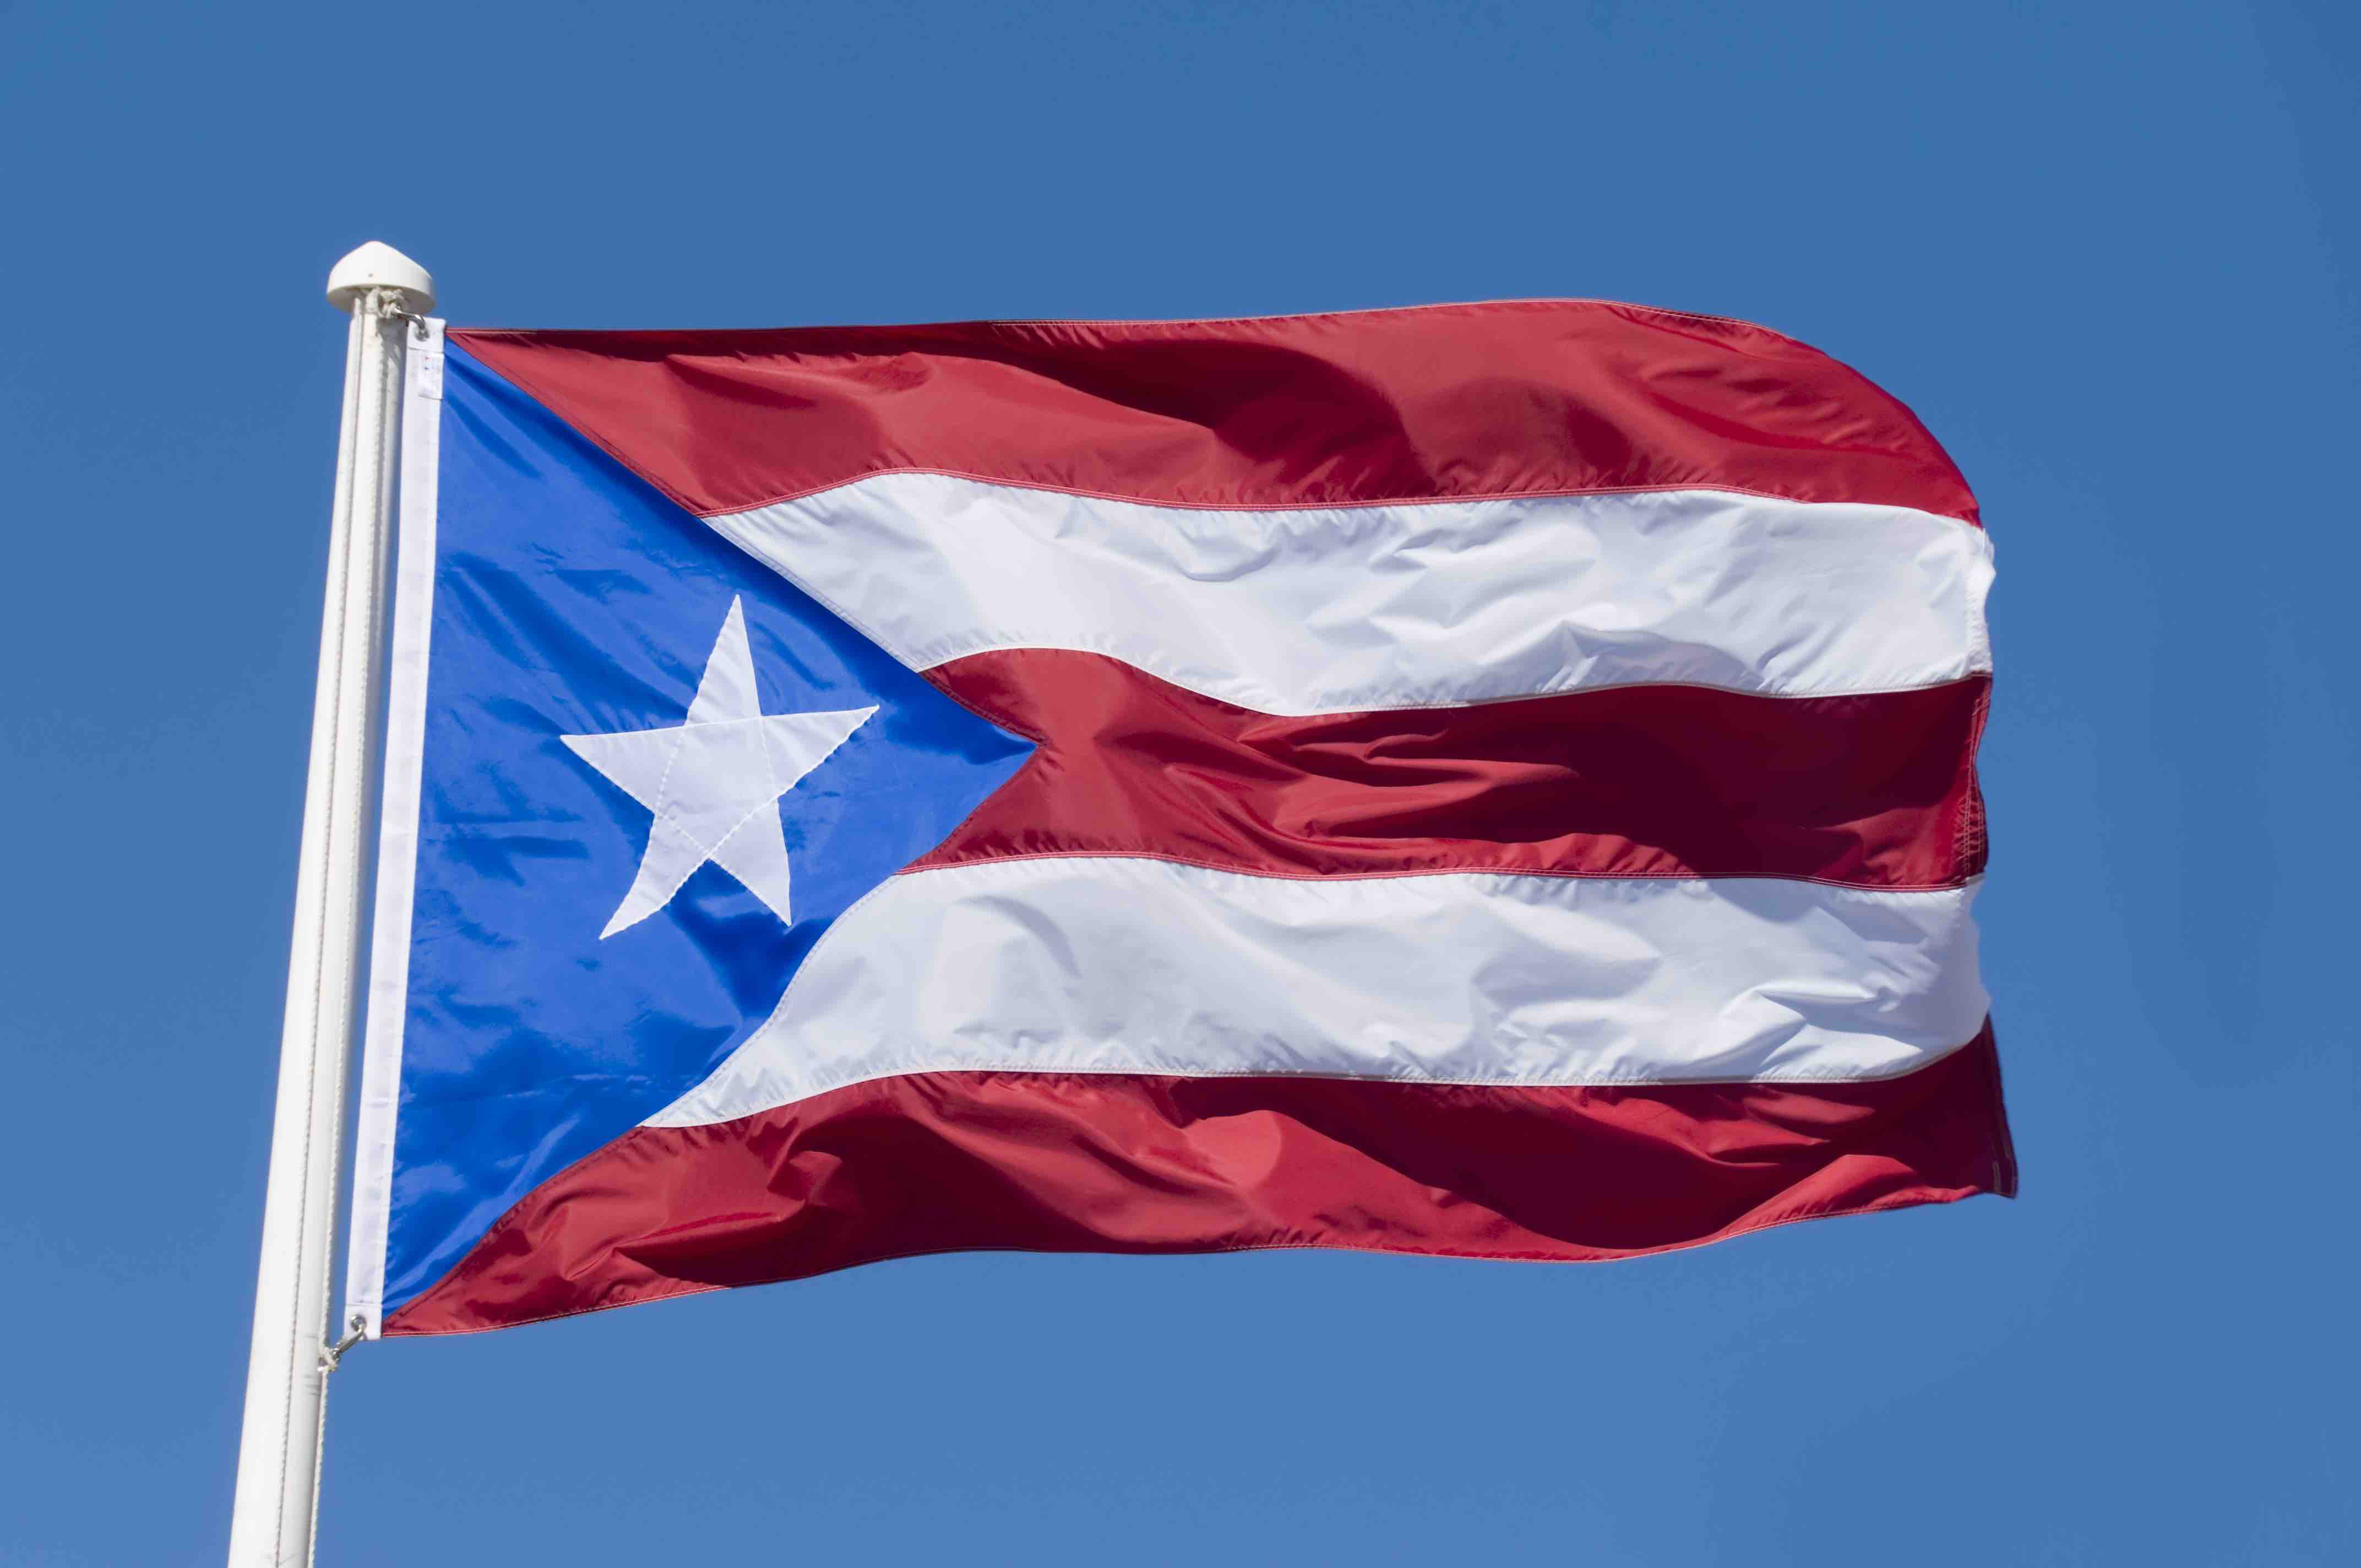 Man Found Guilty of Two Felony Hate Crimes After Harassing a Woman for Puerto Rican Flag Shirt